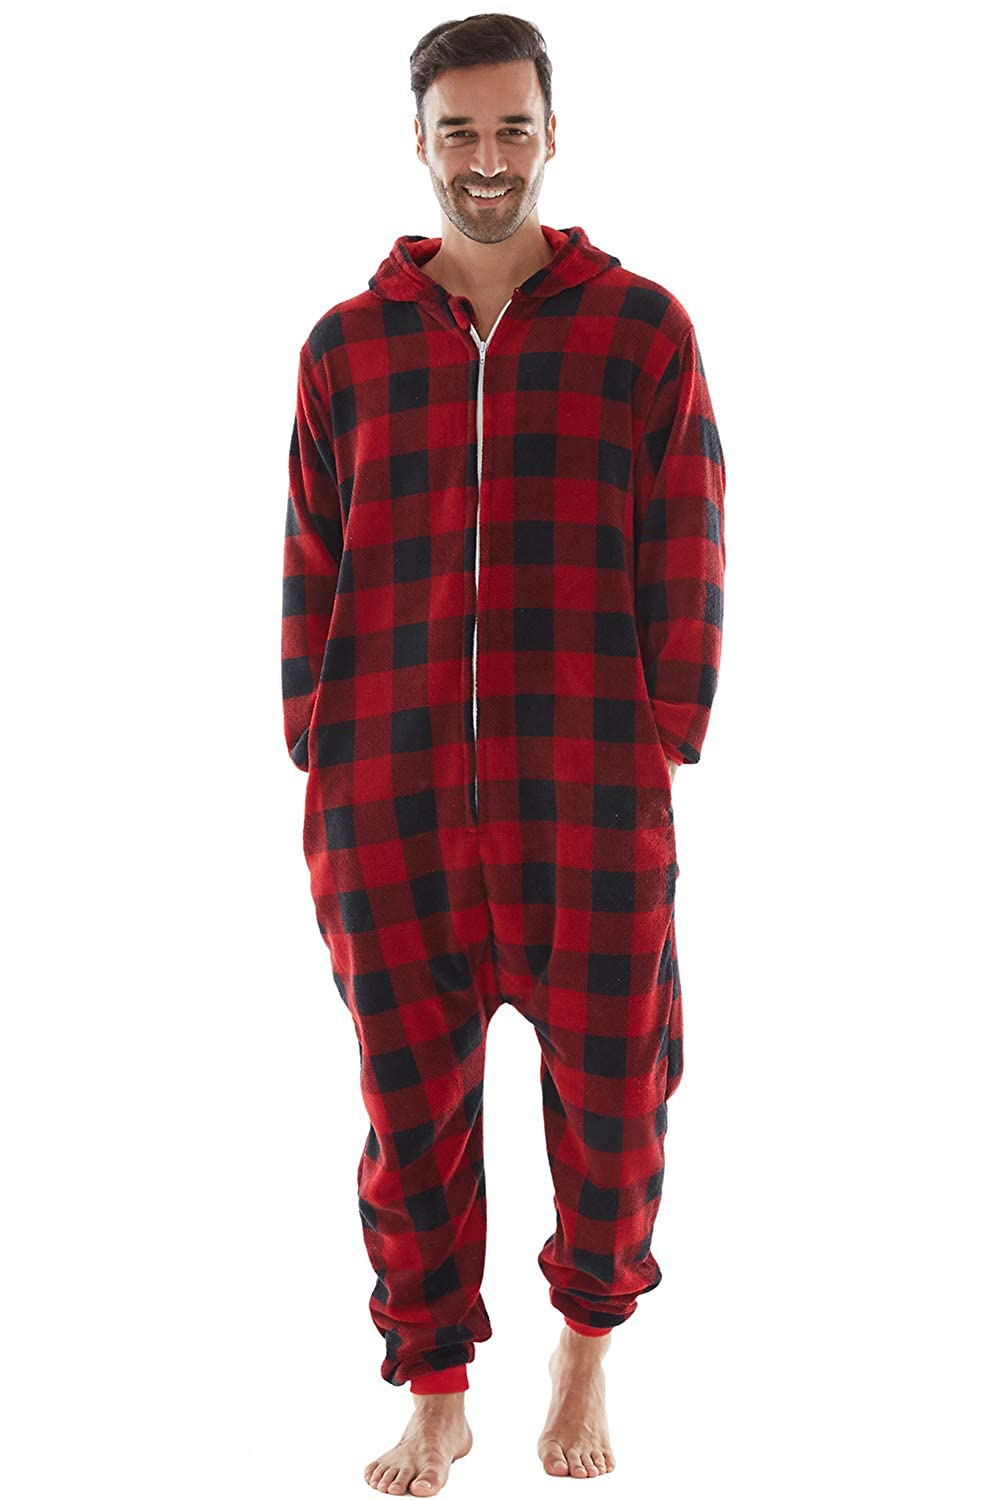 Kids Baby Family Pajamas Matching Sets Drop Seat Onesie Hooded Zip Up Buffalo Plaid One Piece PJs for Couples Pets